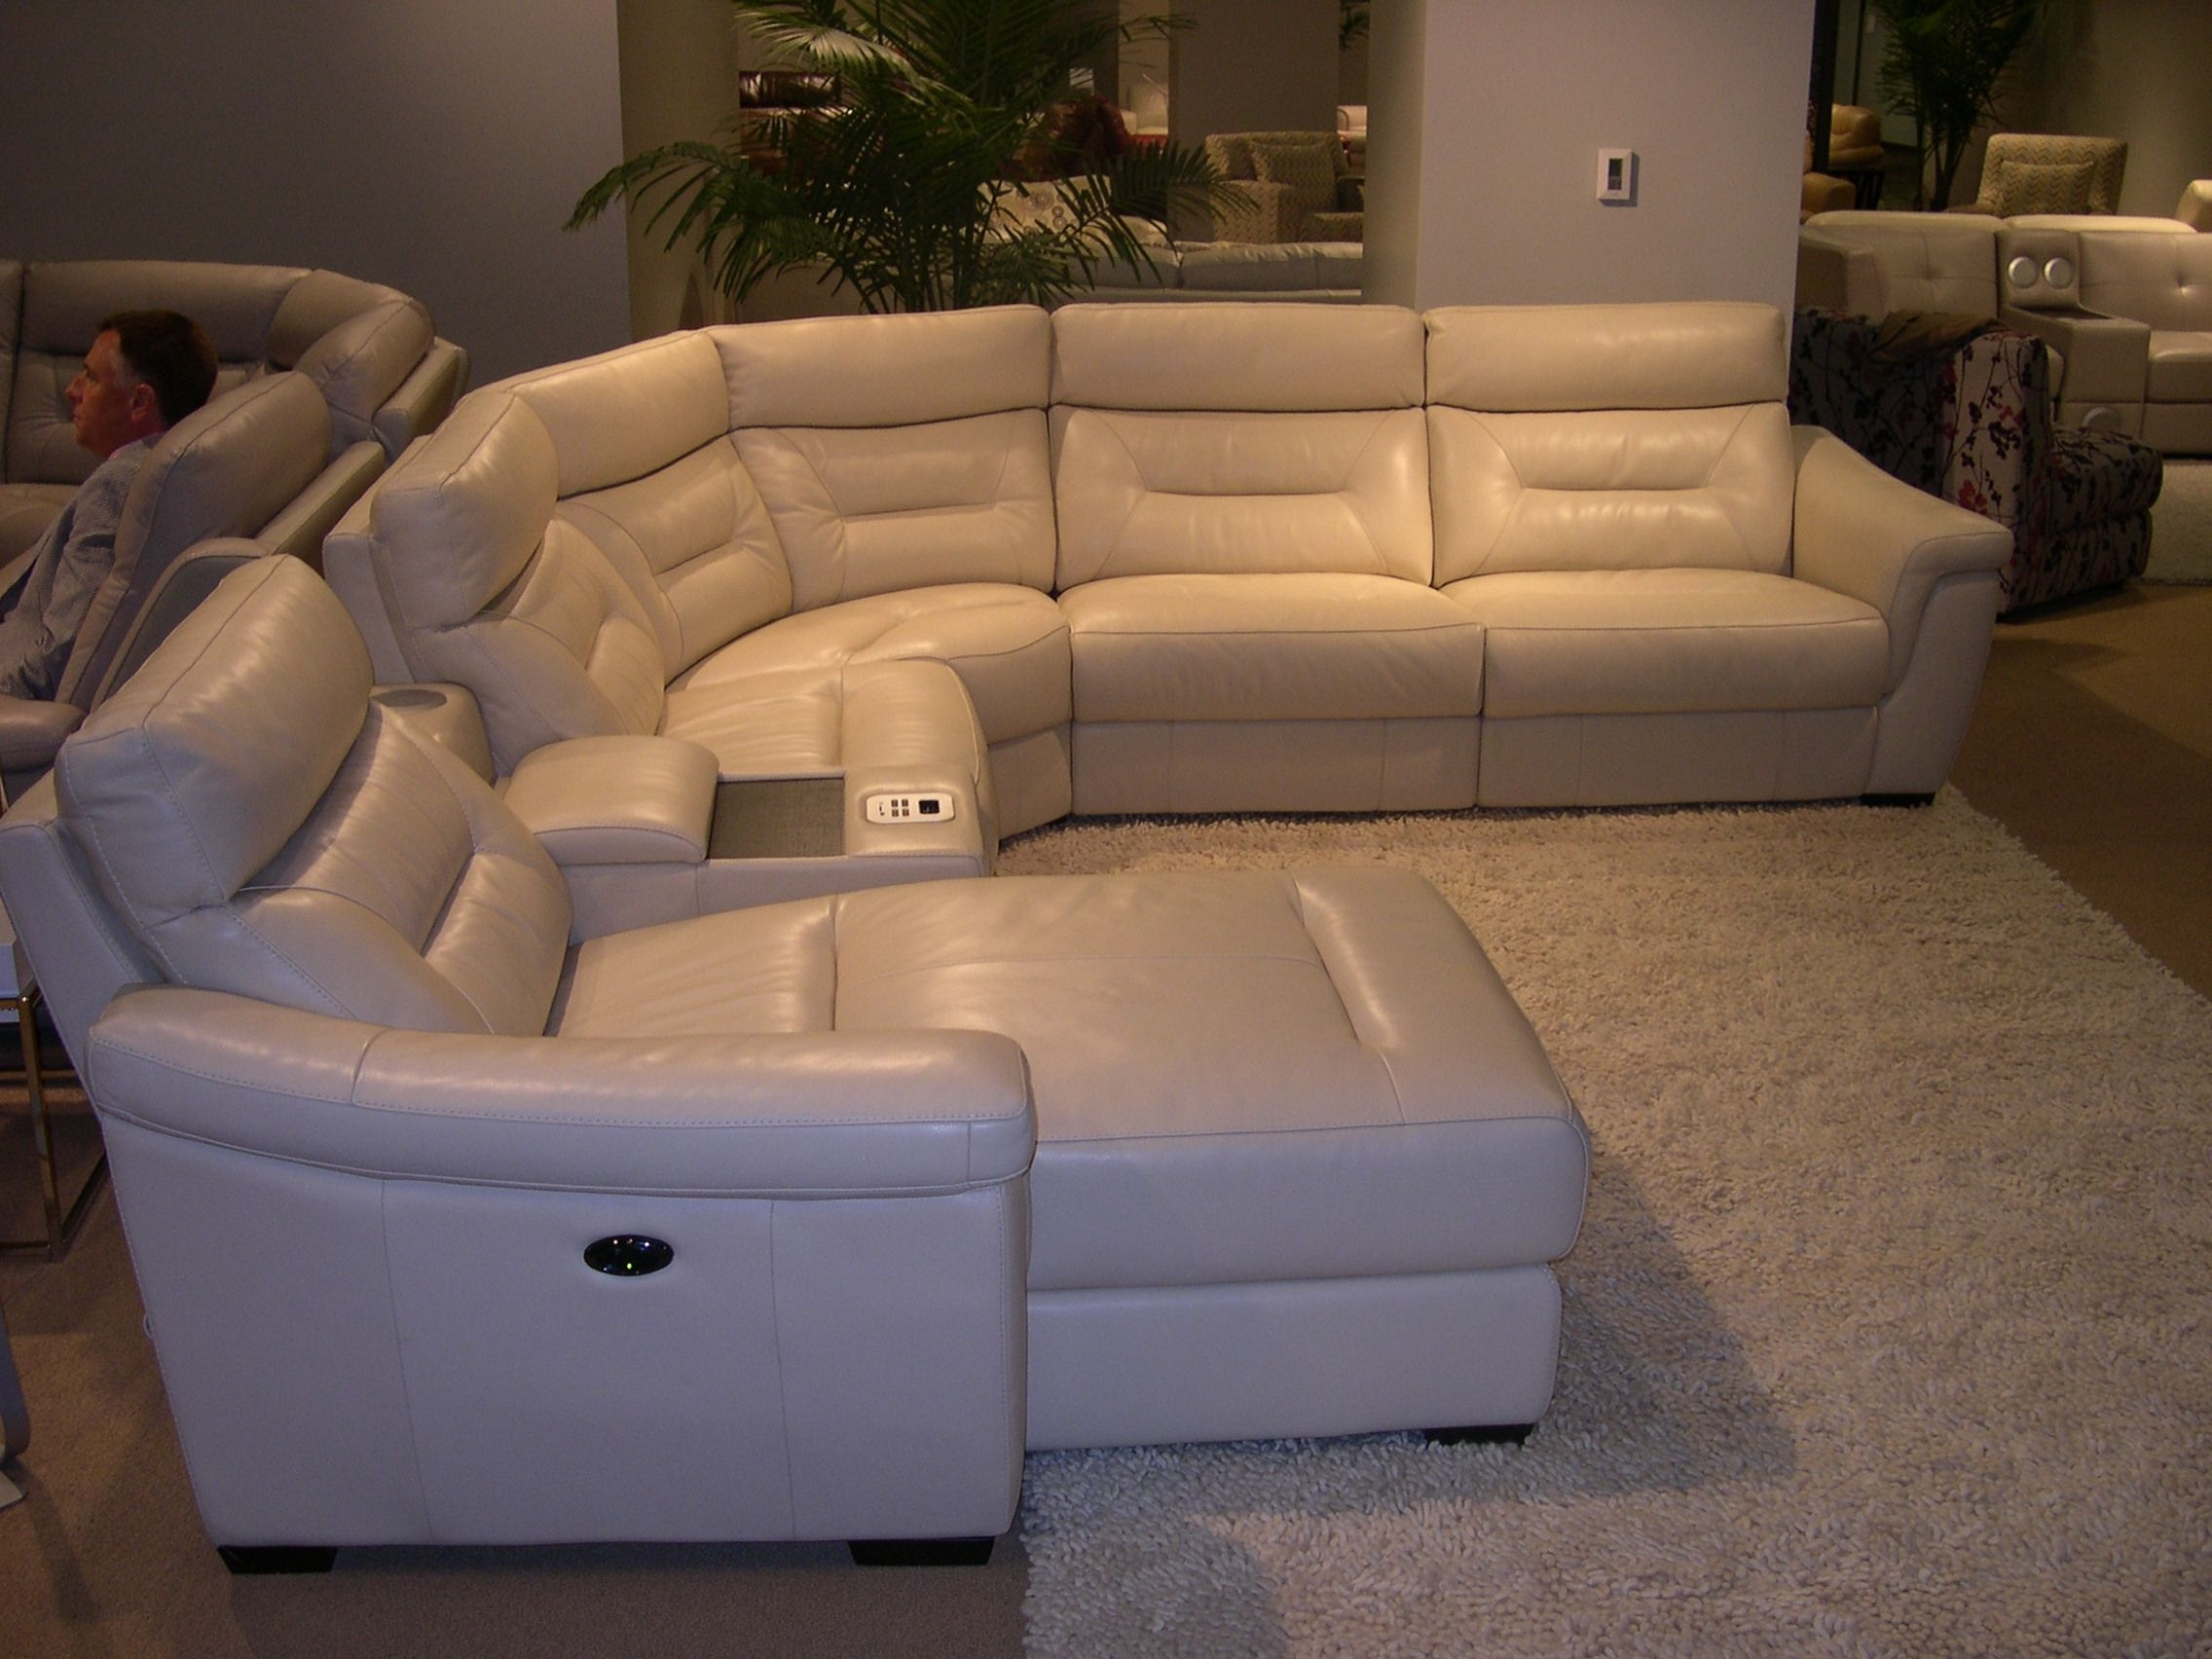 Fashionable Htl Leather Sectional – Adjustable Headrests (View 3 of 20)